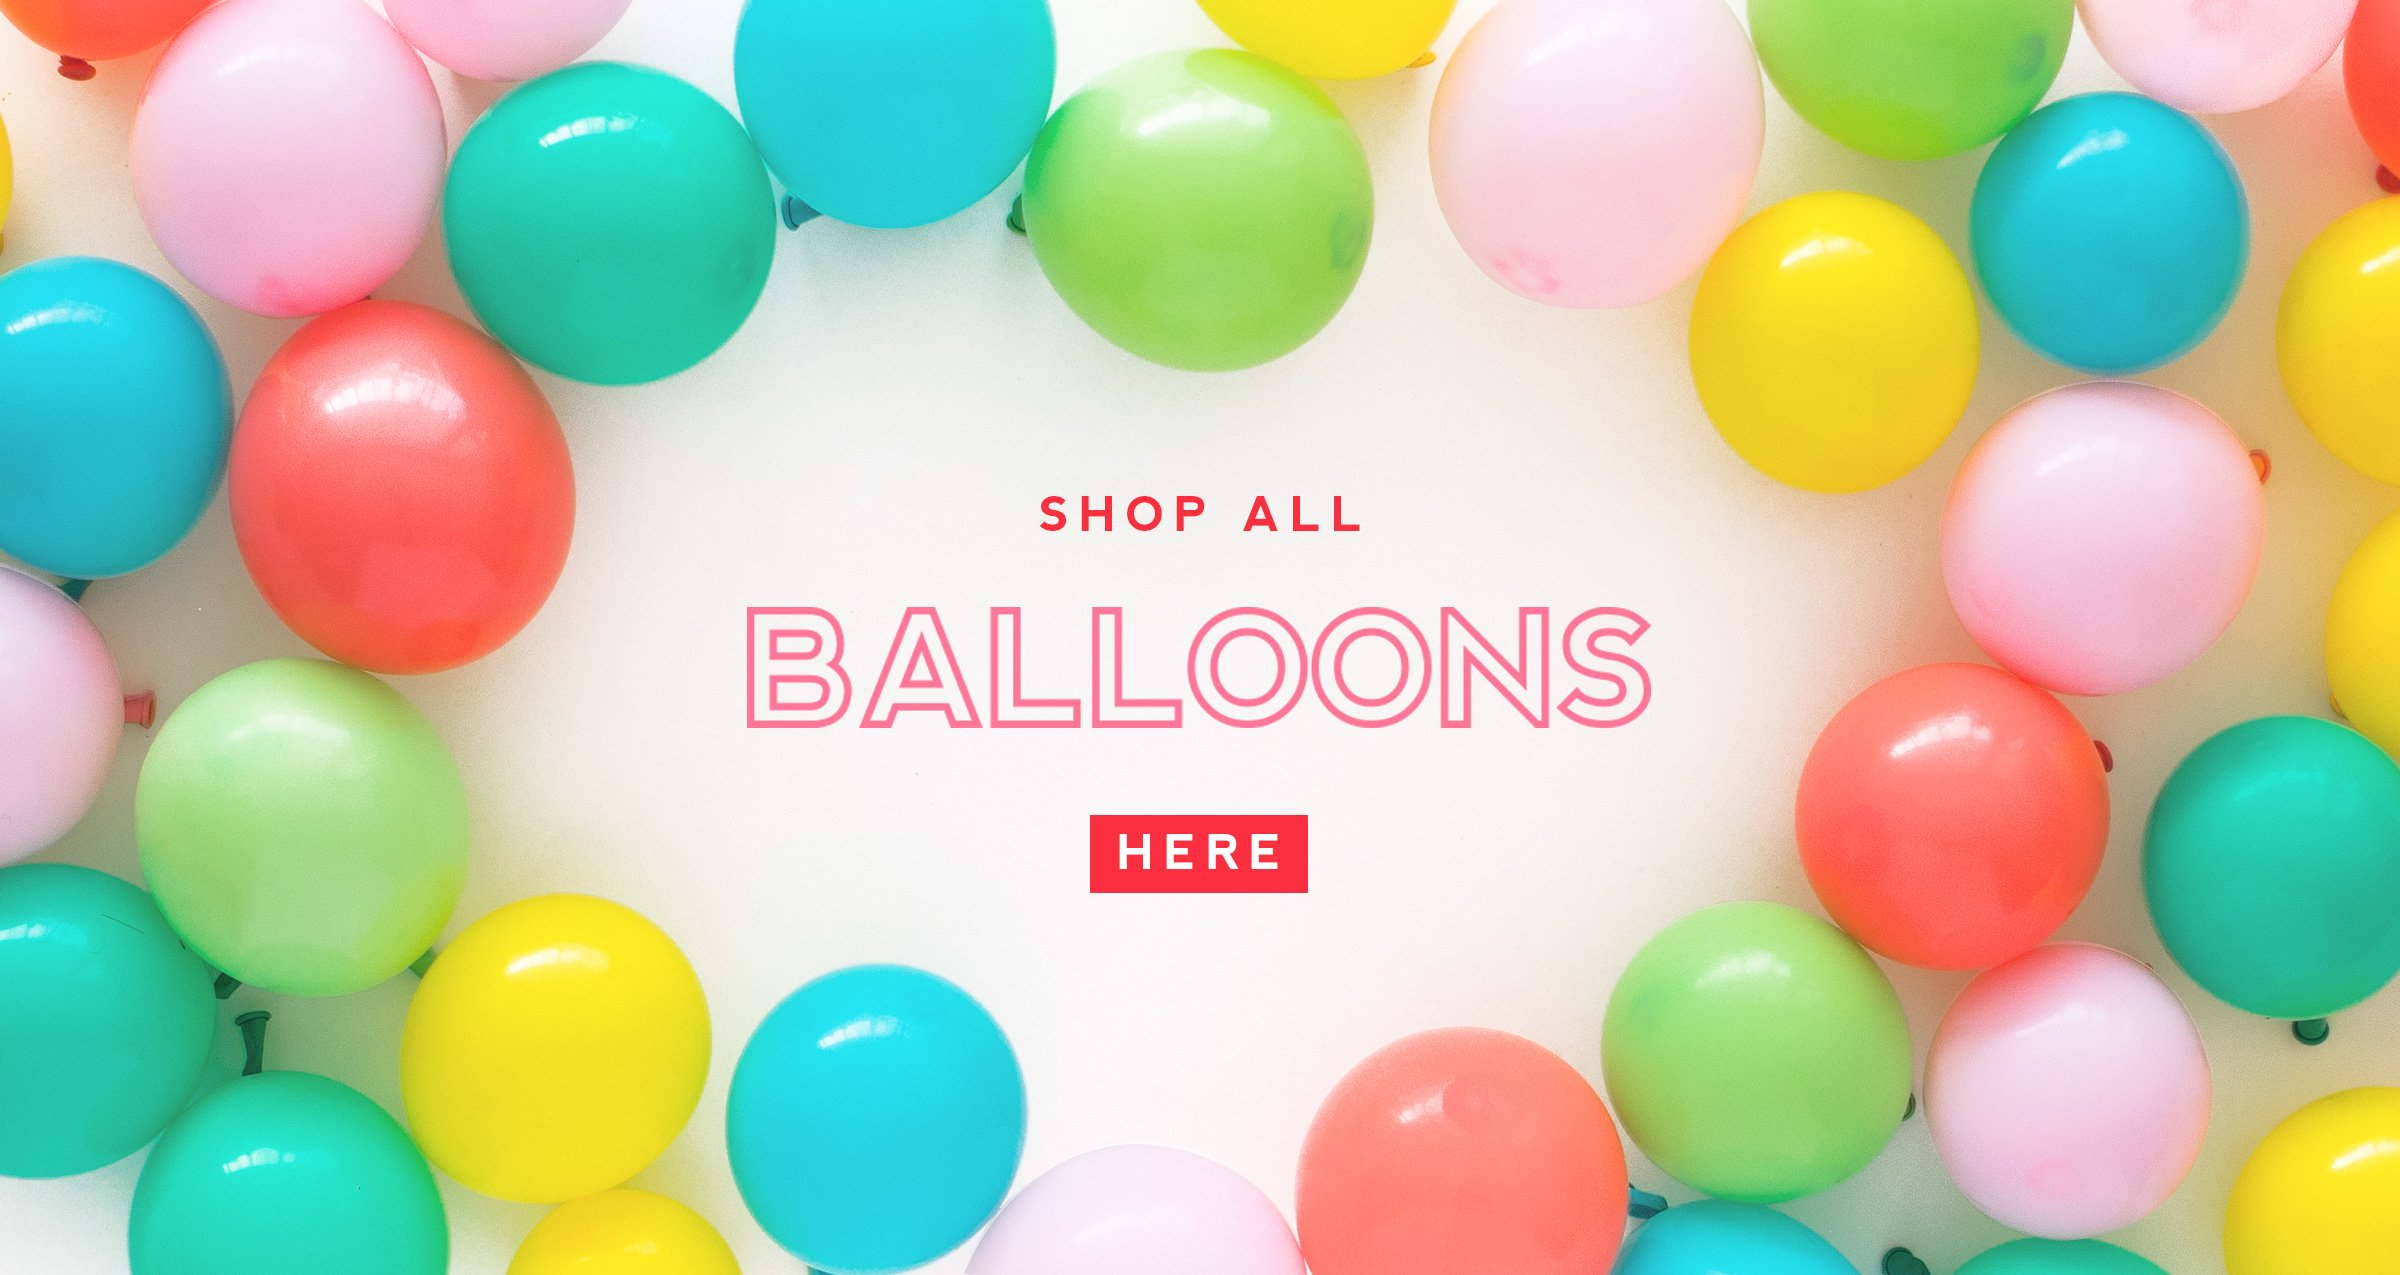 Balloons Home Page